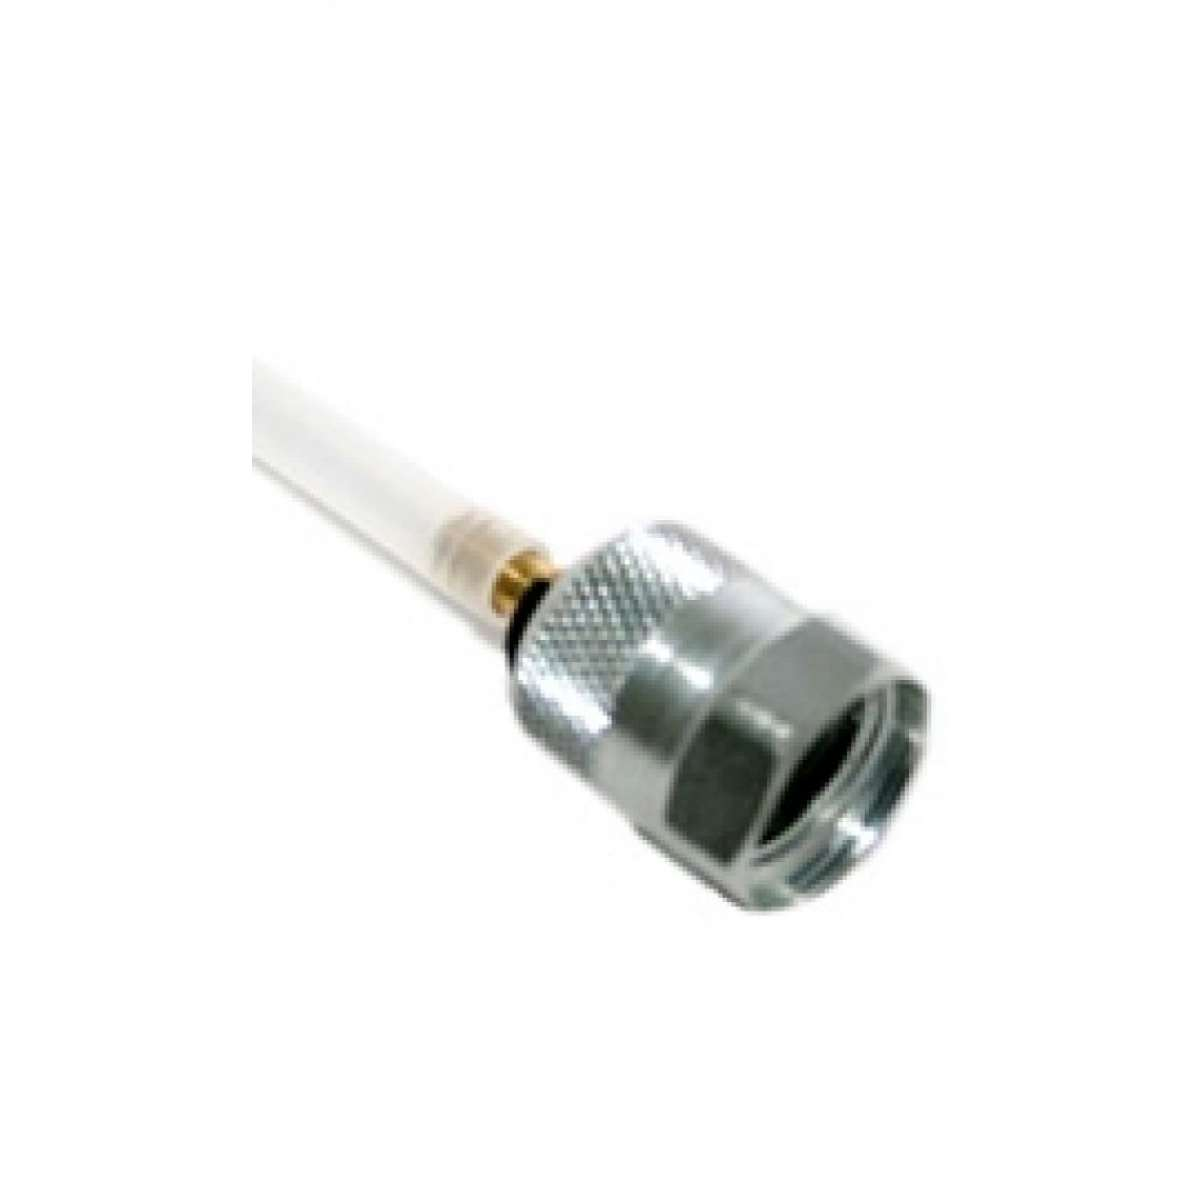 "M Series M16x2 Probe Adapter with Barb for 1/4"" OD Disposable Tubing"